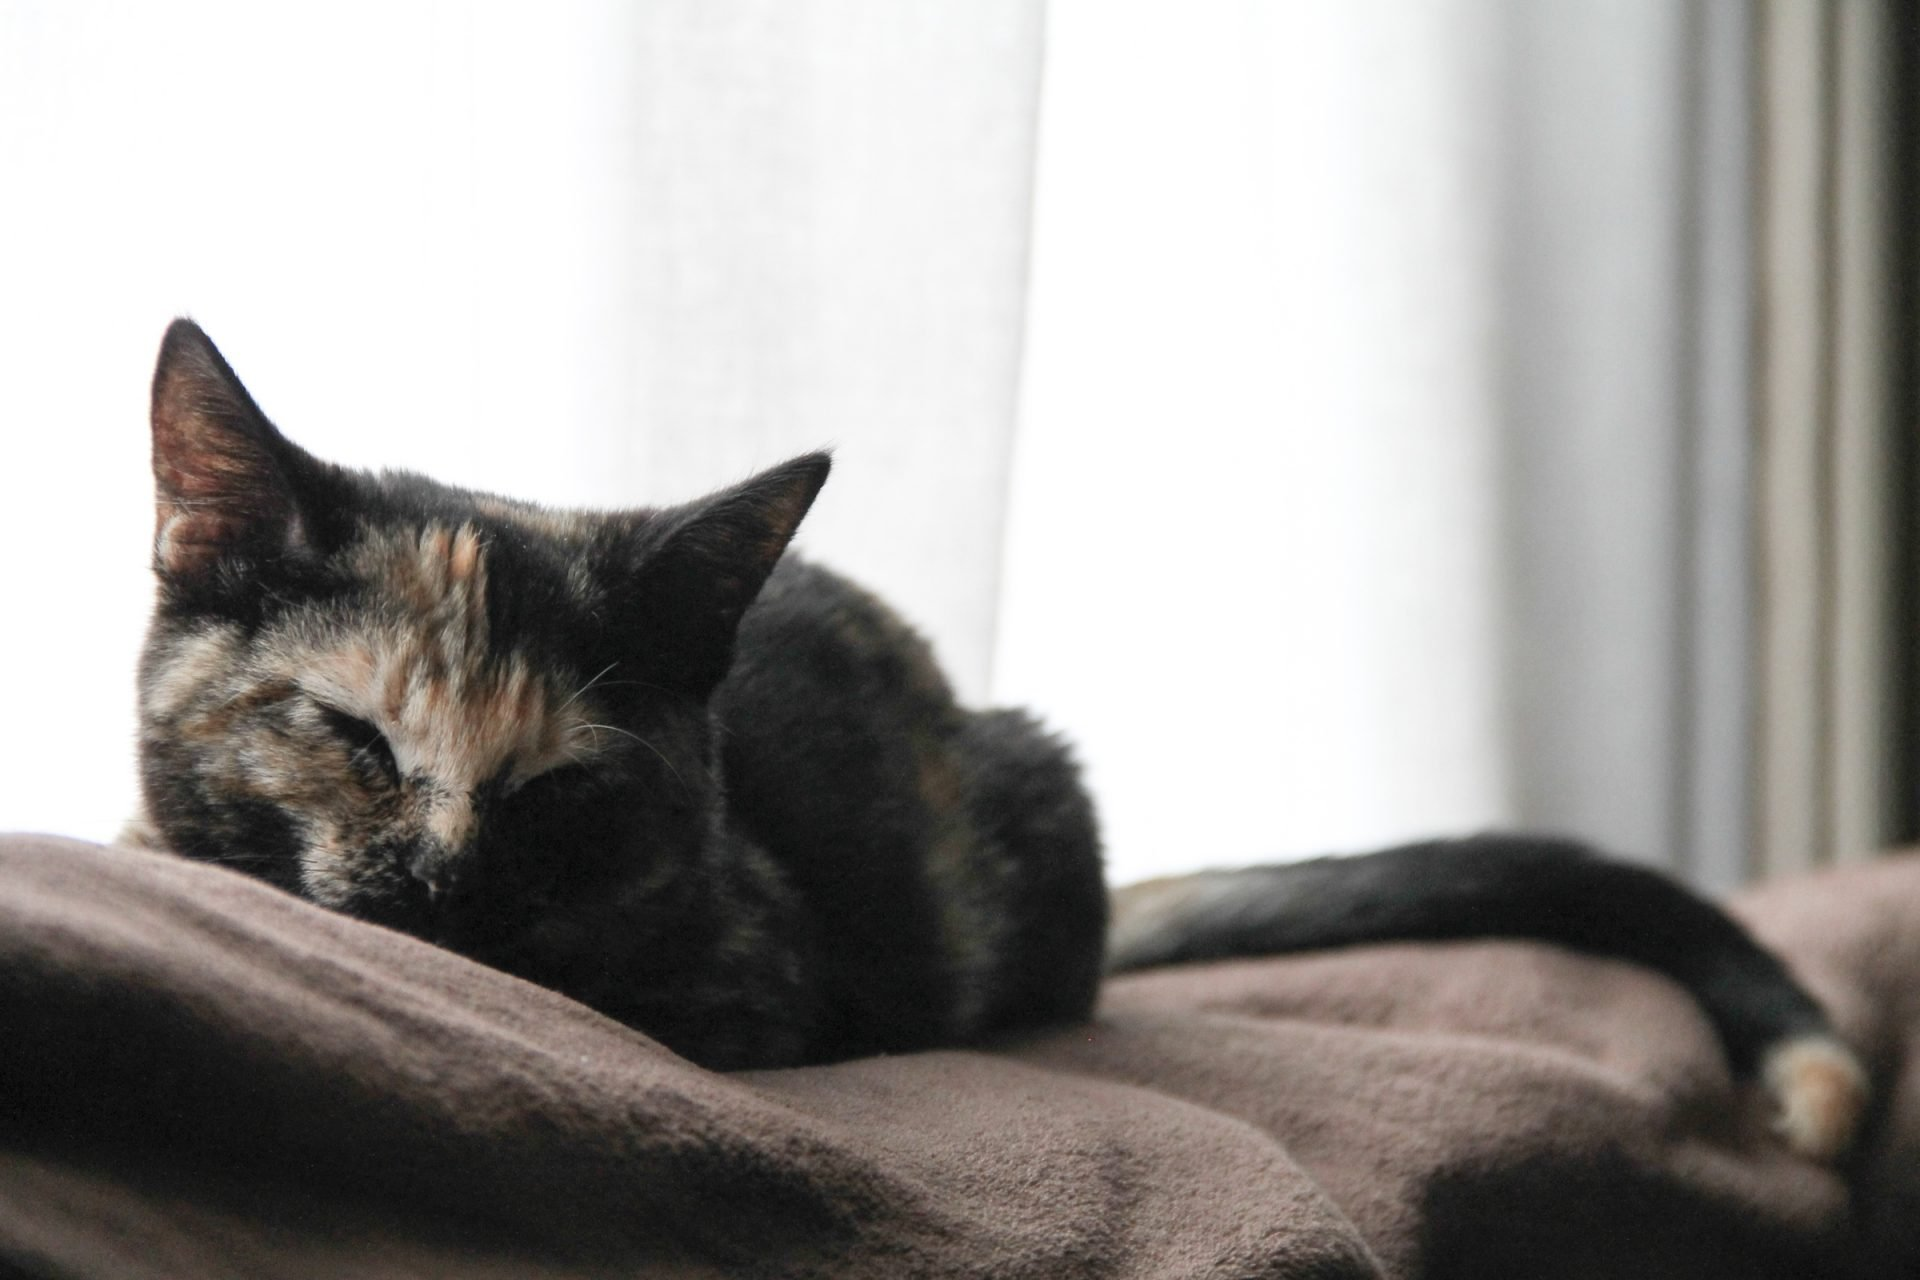 Cat Napping by Window Curtains